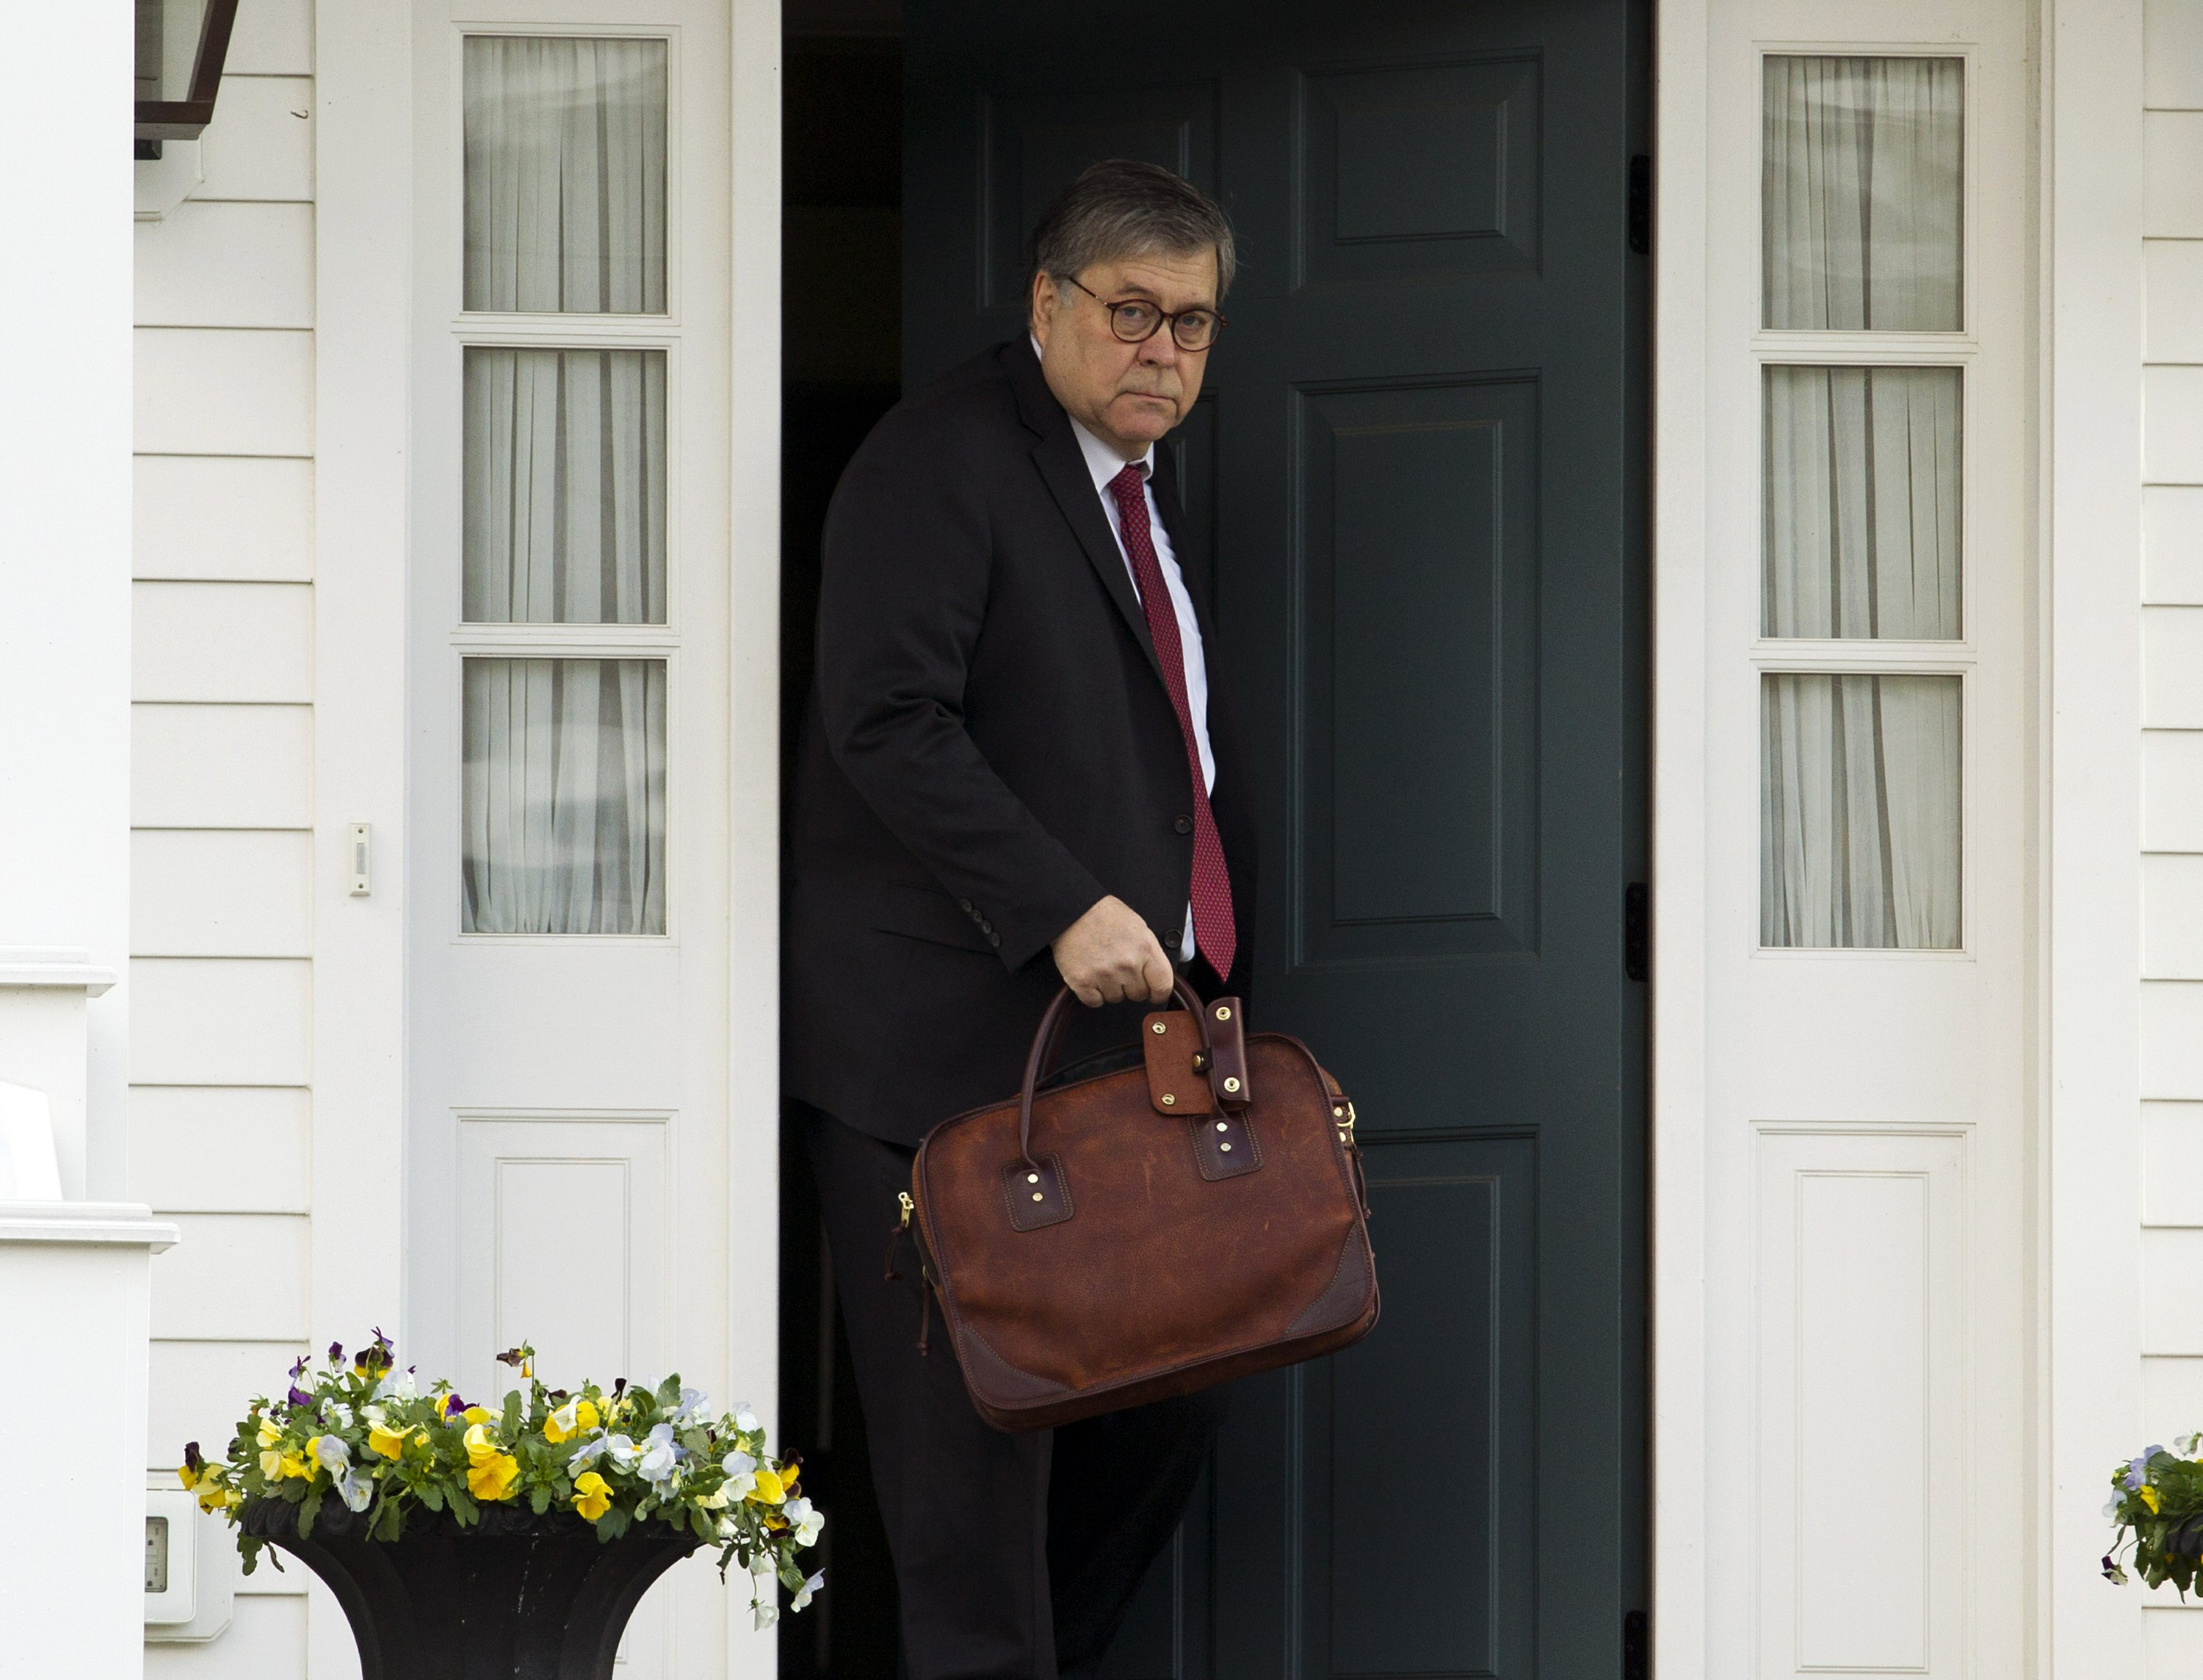 Barr leaving his home